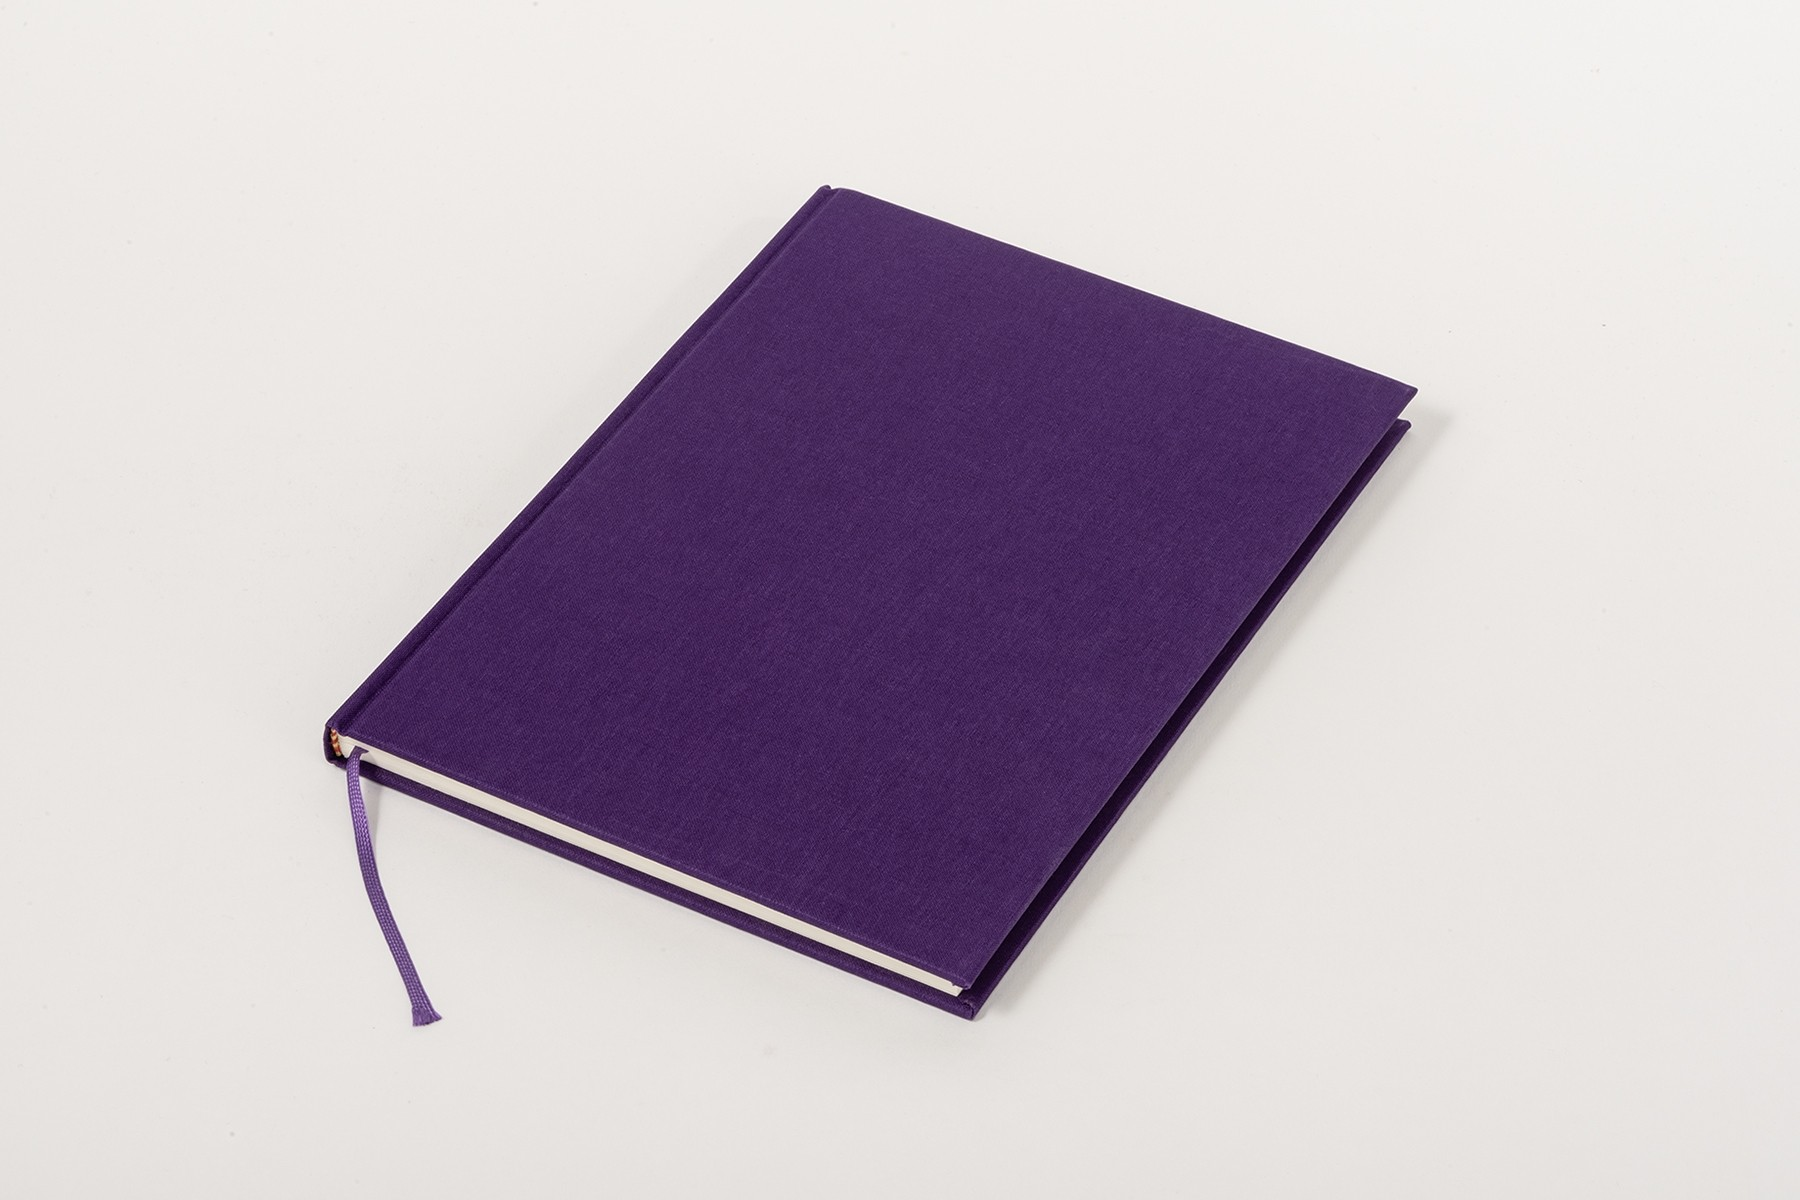 Livre de notes couverture rigide, prune